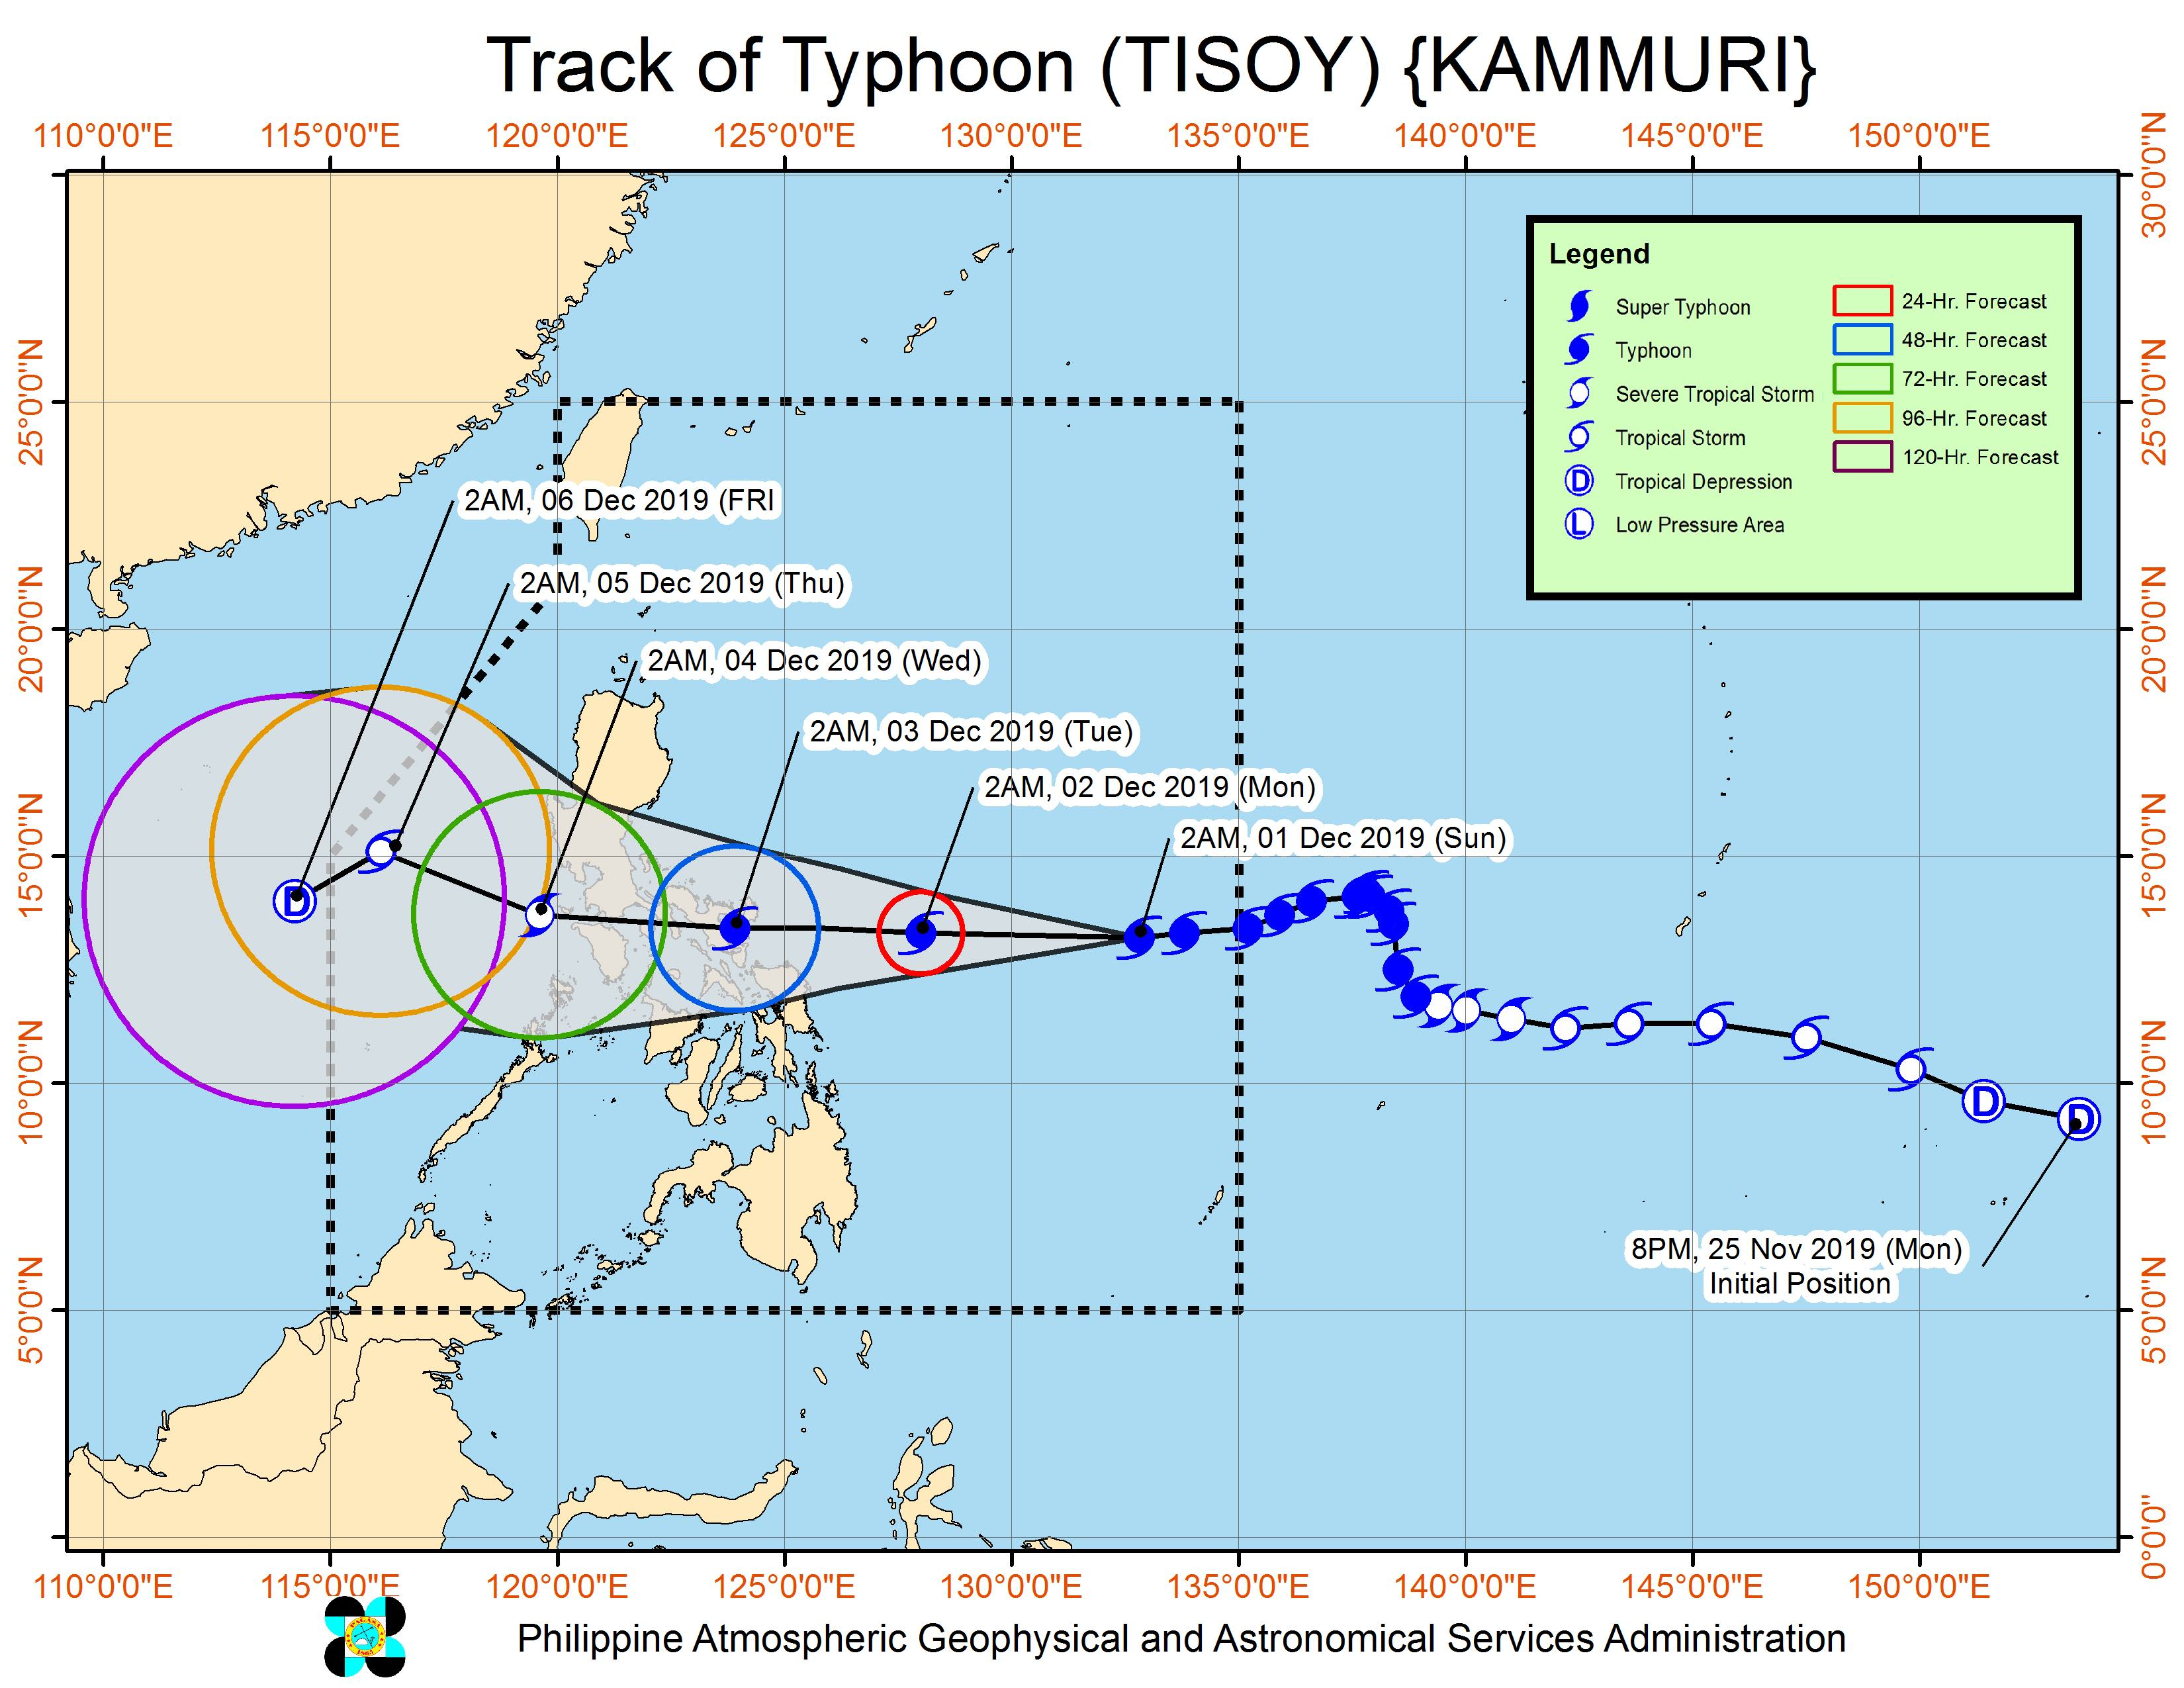 Forecast track of Typhoon Tisoy (Kammuri) as of December 1, 2019, 5 am. Image from PAGASA